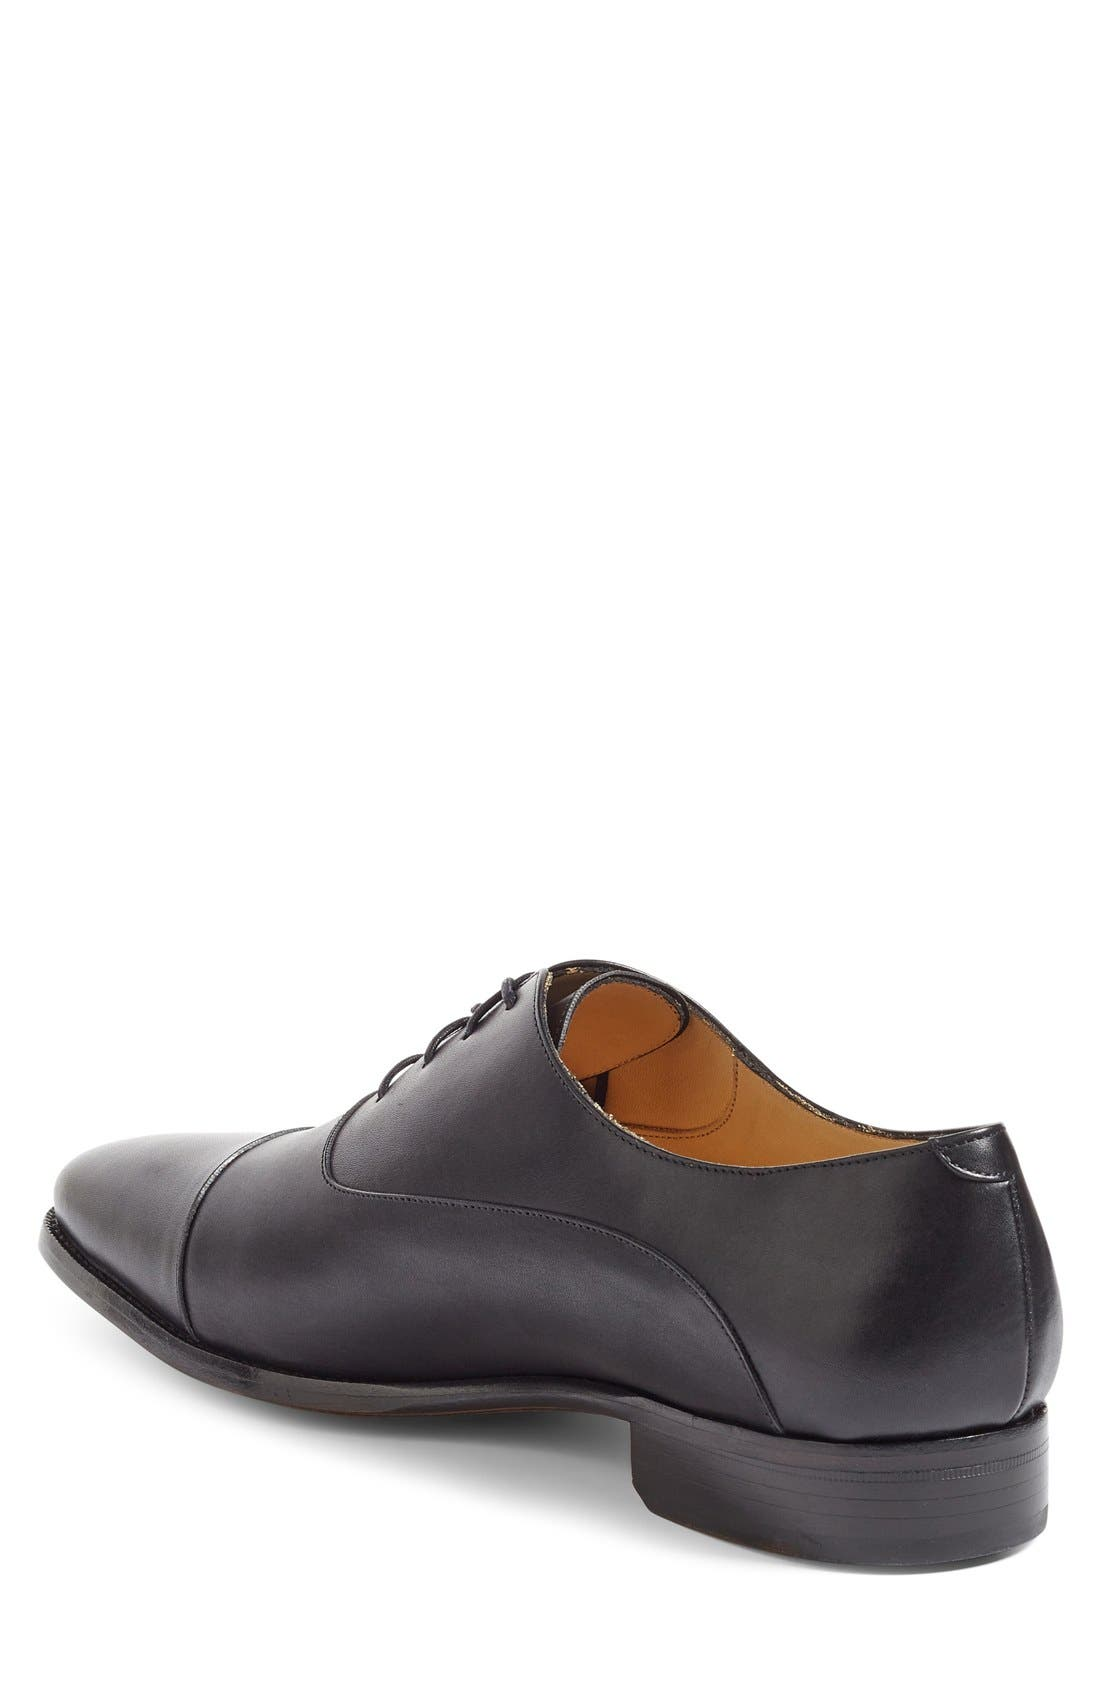 Joe Cap Toe Oxford,                             Alternate thumbnail 2, color,                             BLACK LEATHER